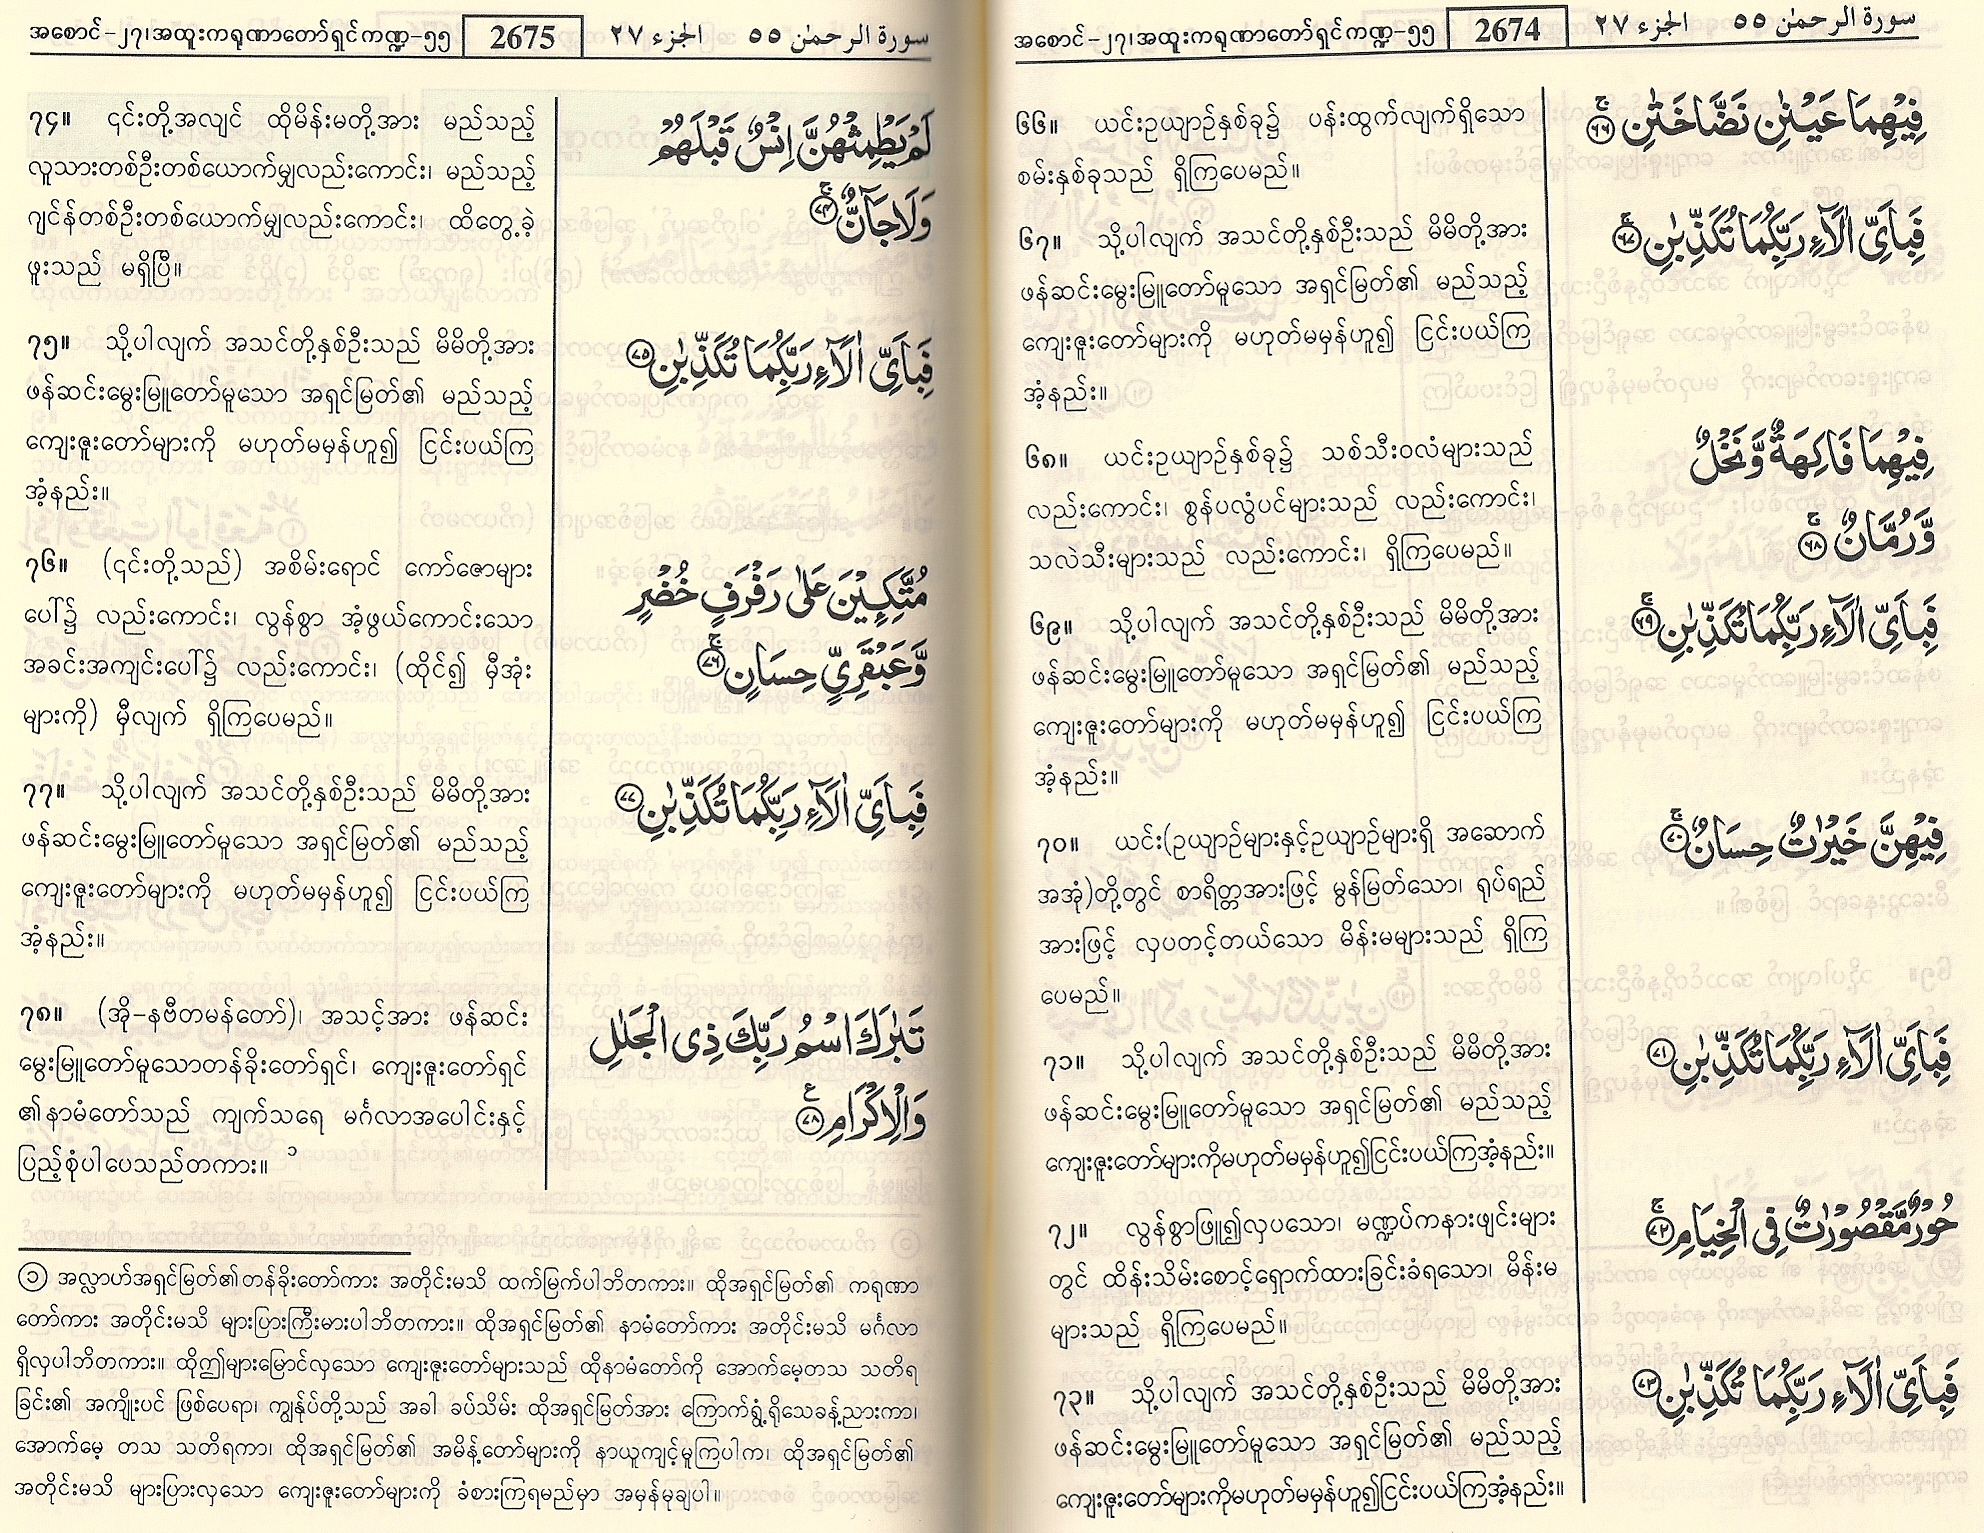 Surat Ar-Rahman Arabic, English and Burmese | Dr Ko Ko Gyi's Blog